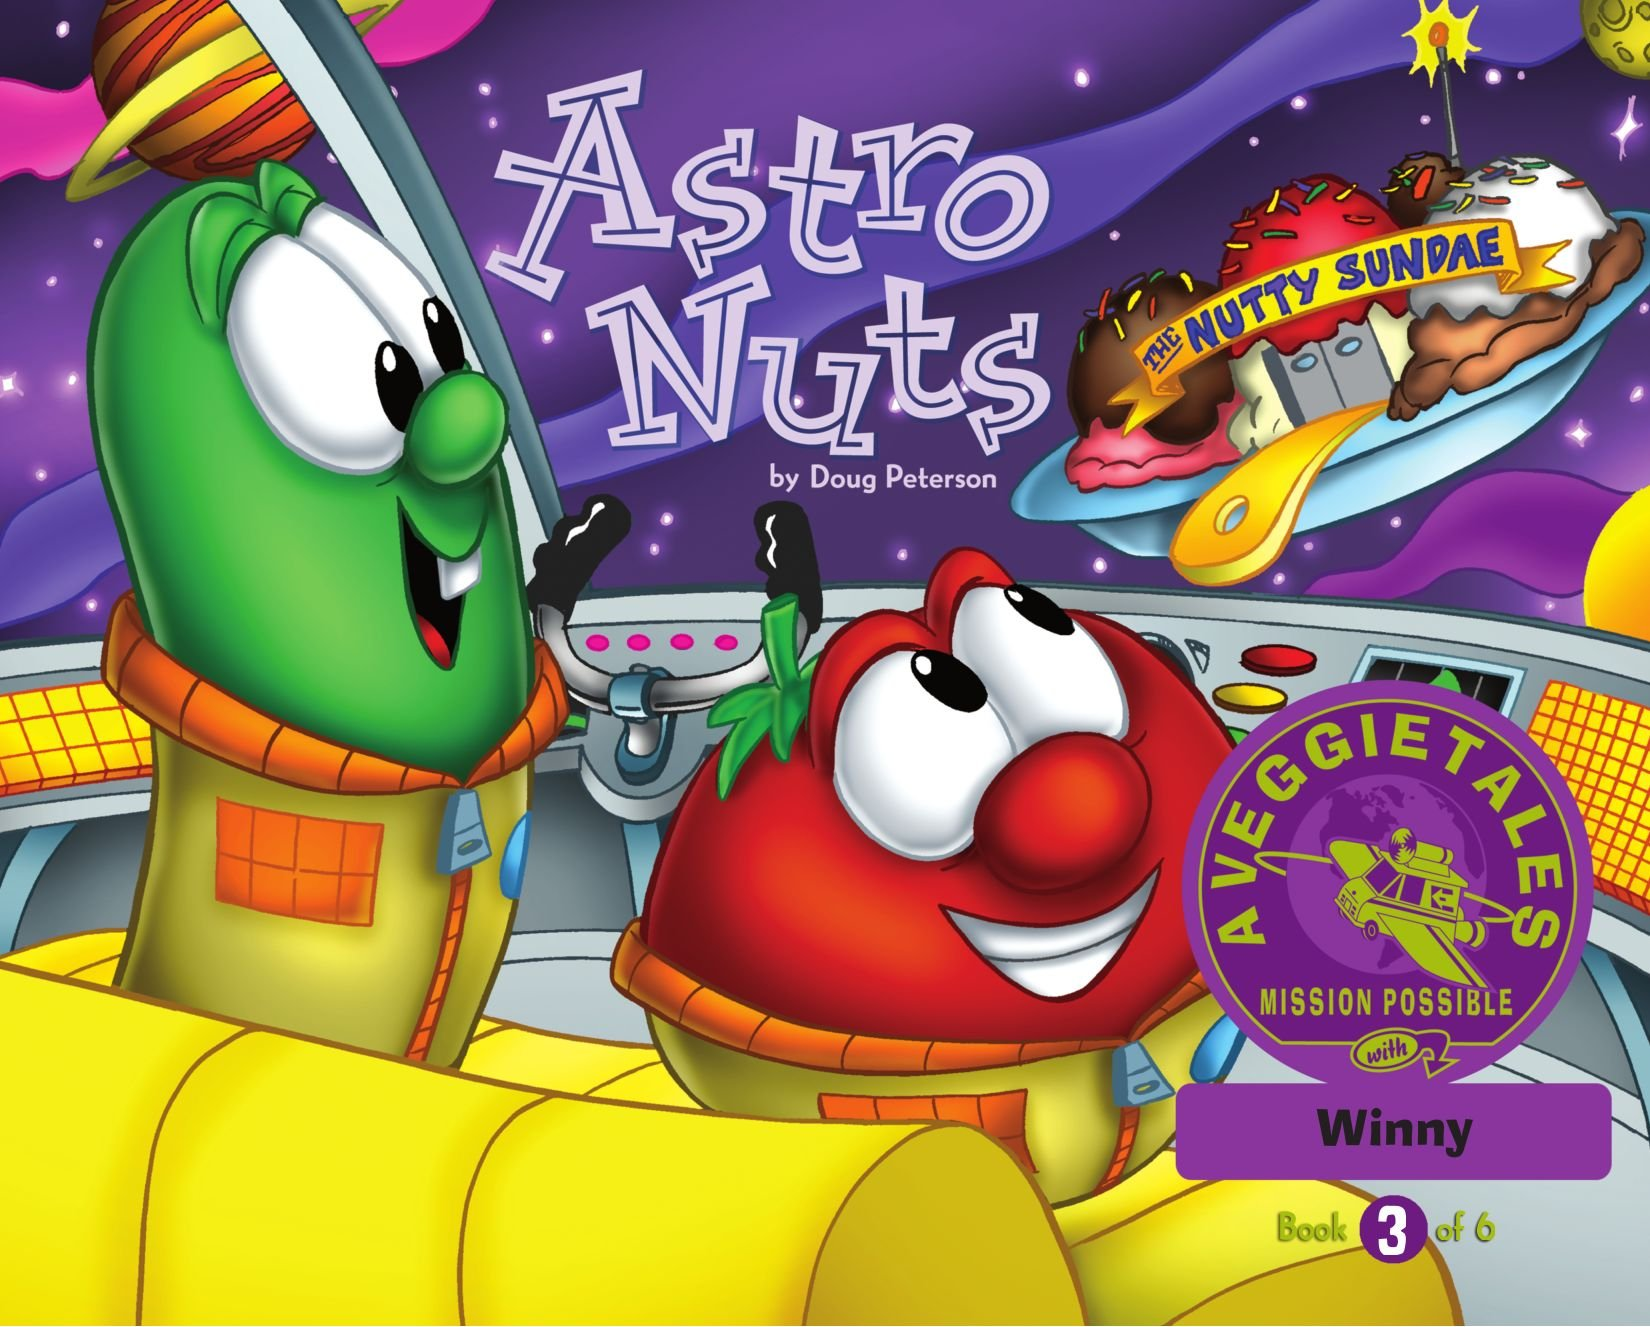 Astro Nuts - VeggieTales Mission Possible Adventure Series #3: Personalized for Winny (Girl) pdf epub